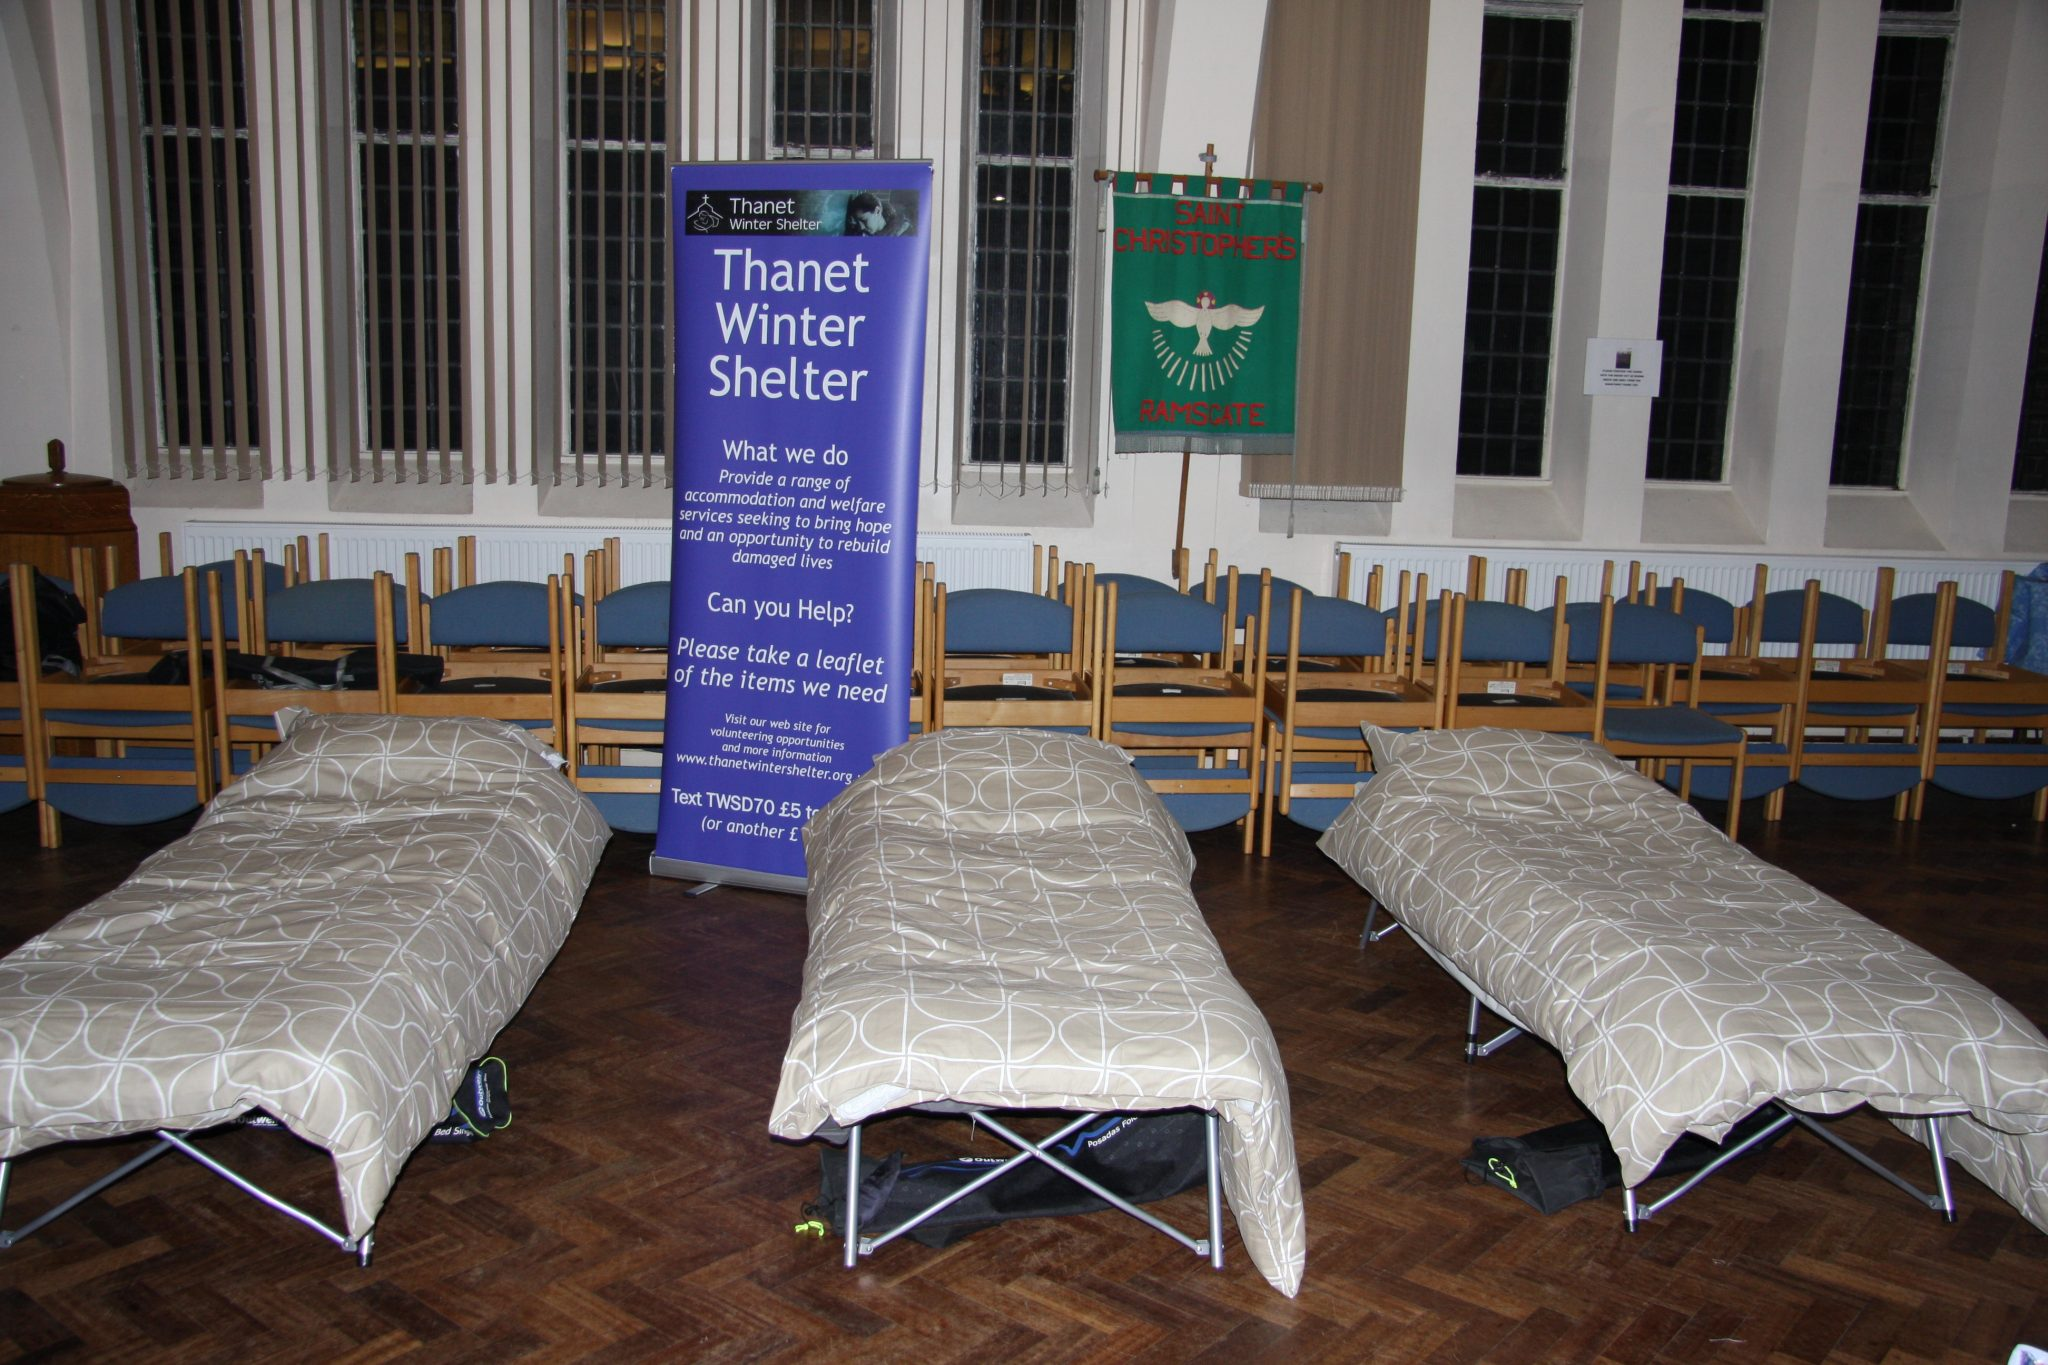 Thanet's Winter Shelter sees positive results in its second year